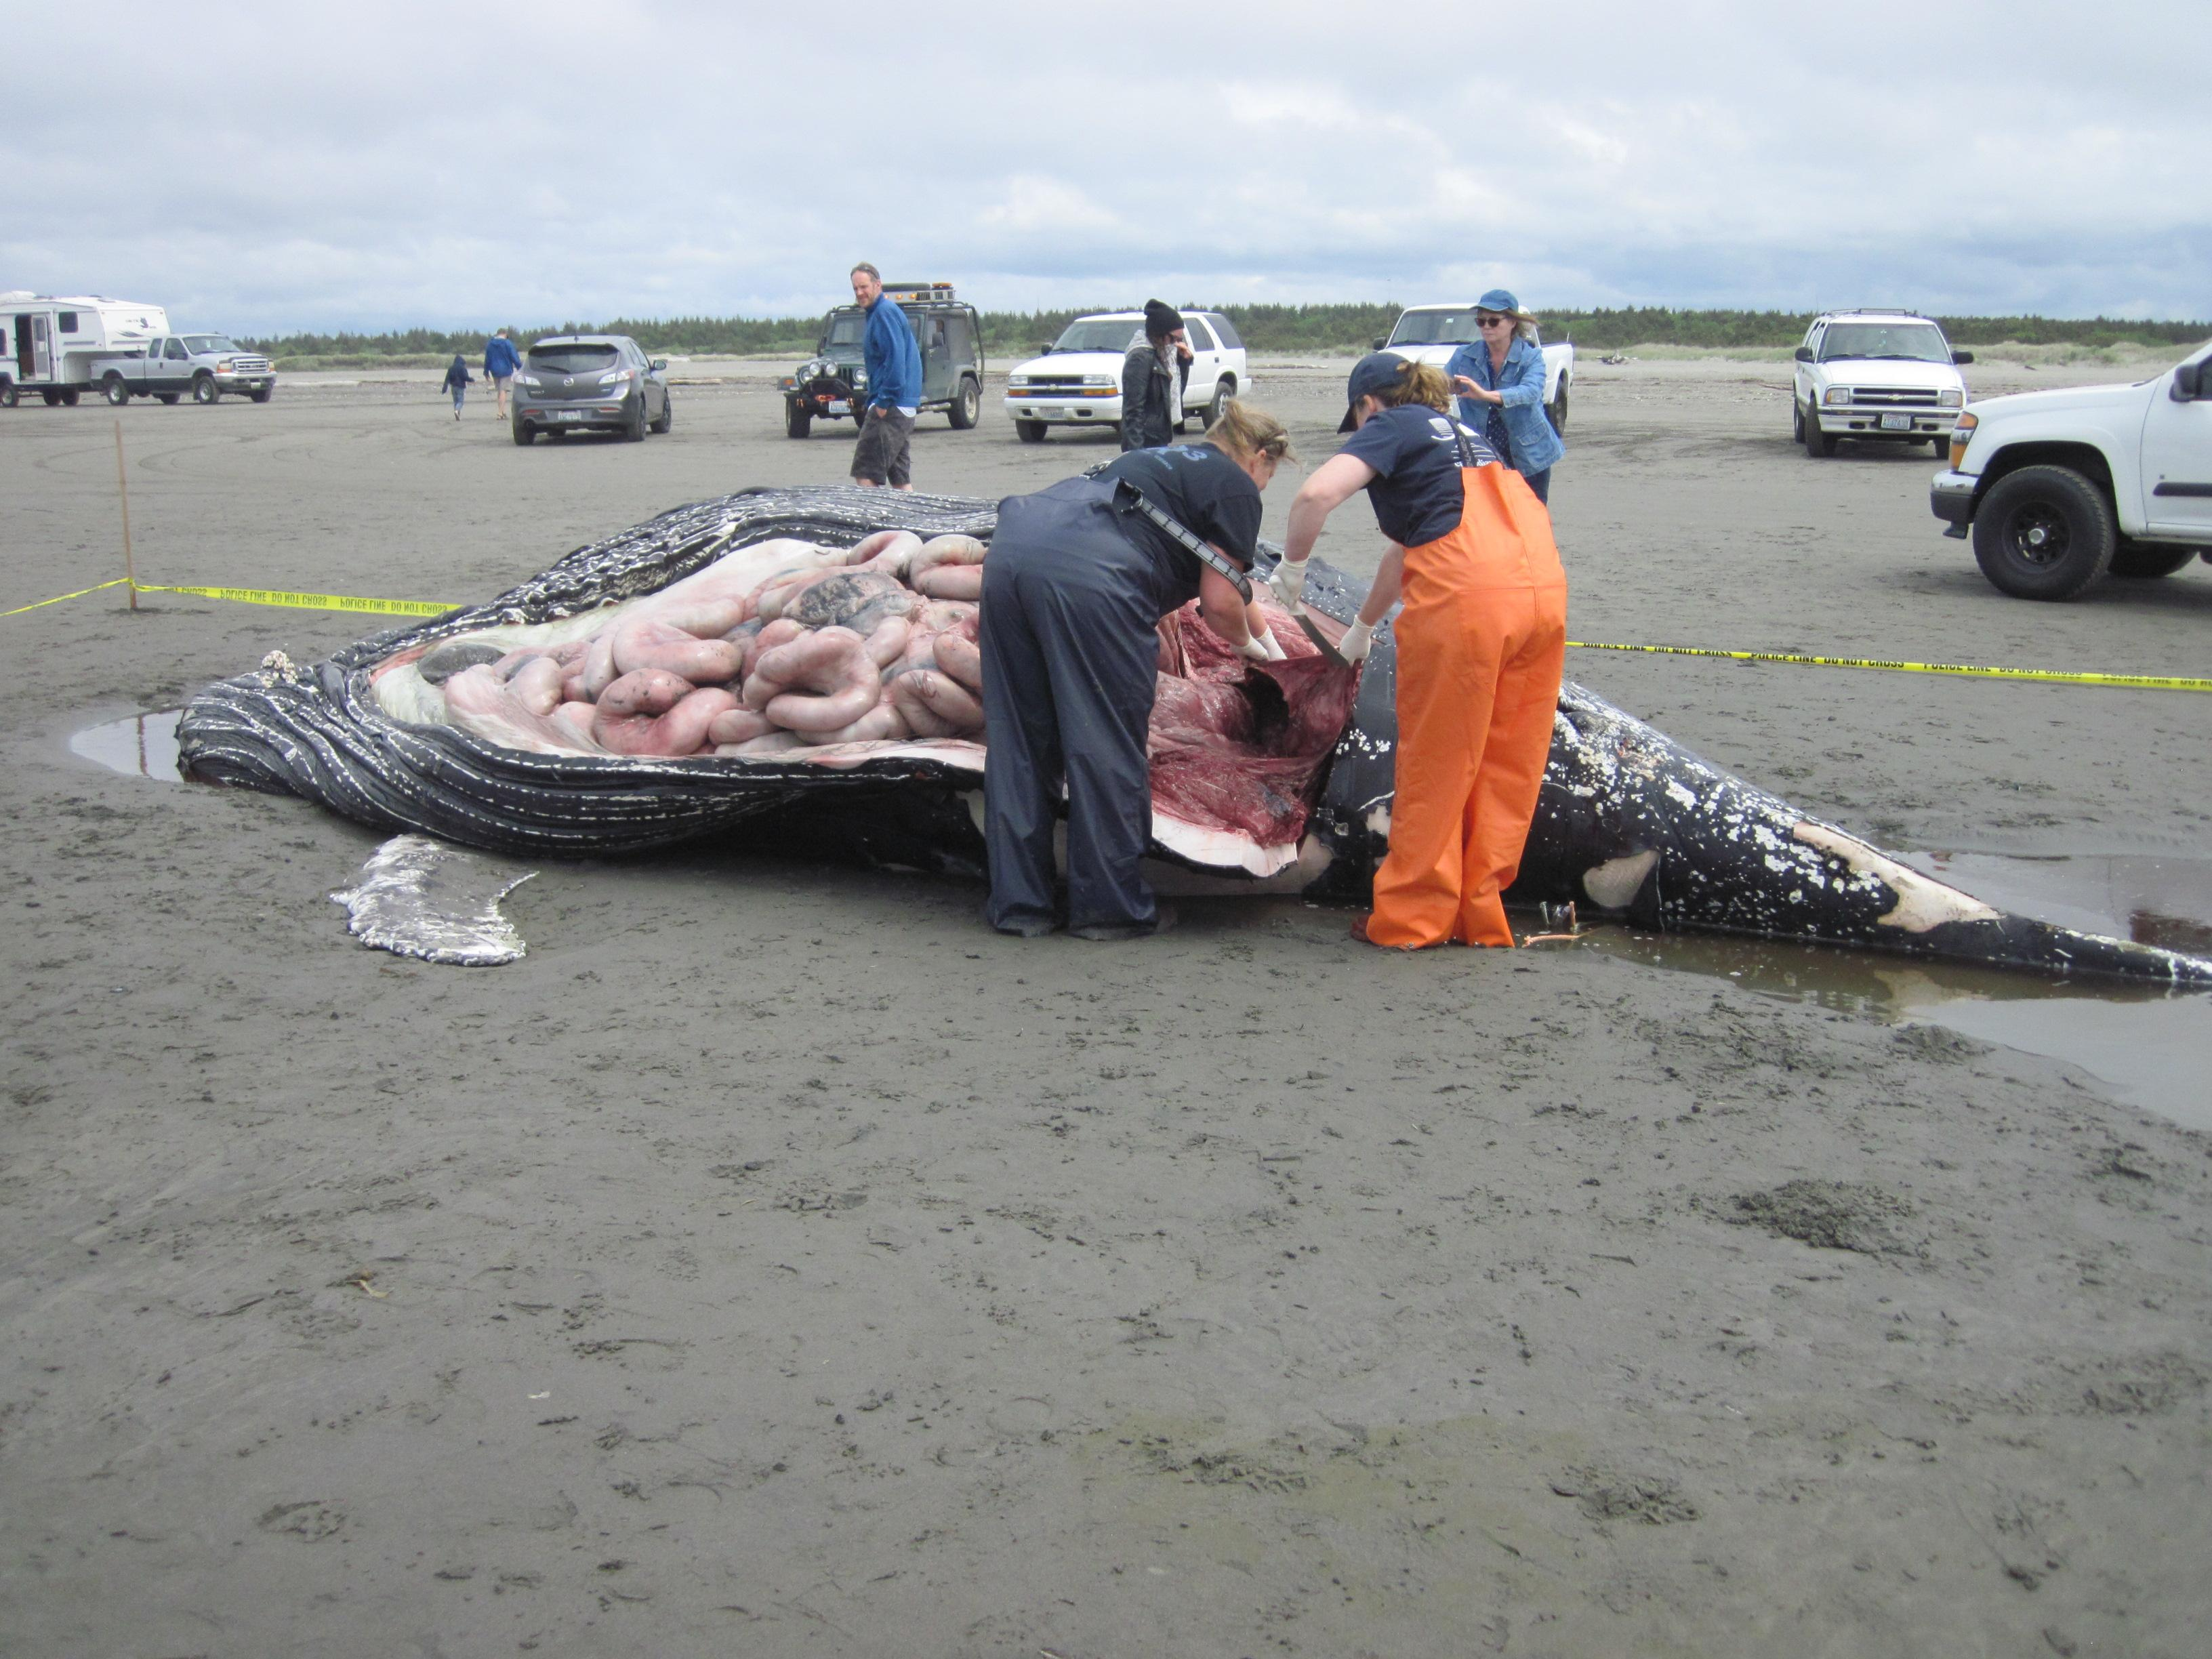 A dead humpback whale washed ashore at Ocean Shores, Wash., on Sunday, May 20, 2018. (Photo: Cascadia Research)